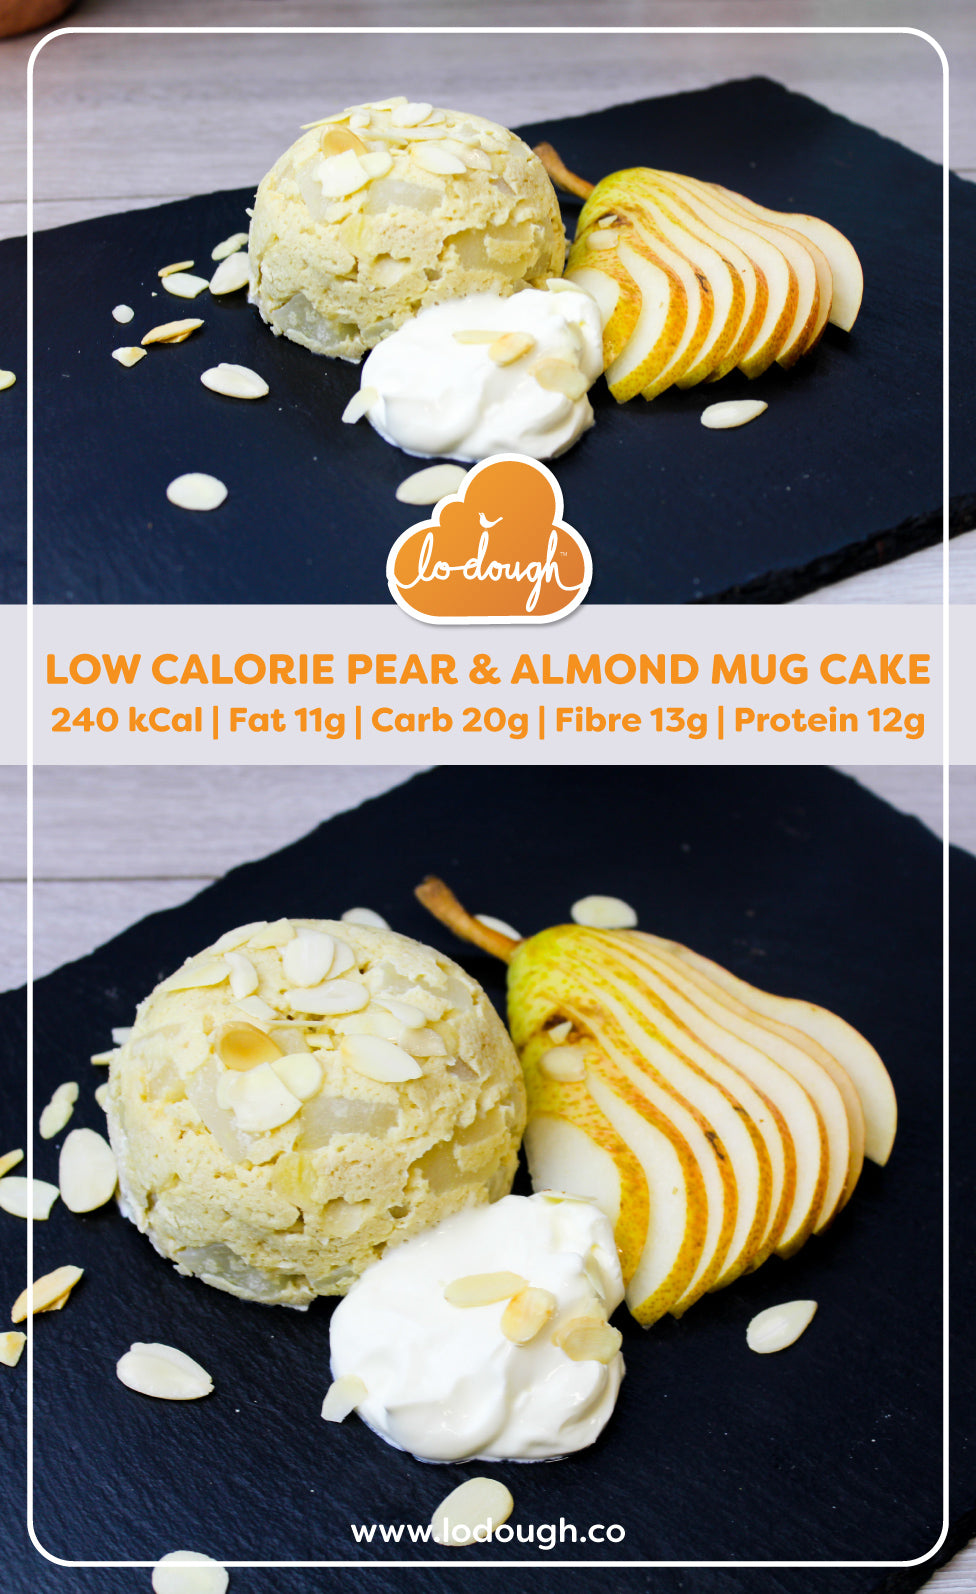 Lo-Dough Pear and Almond Mug Cake